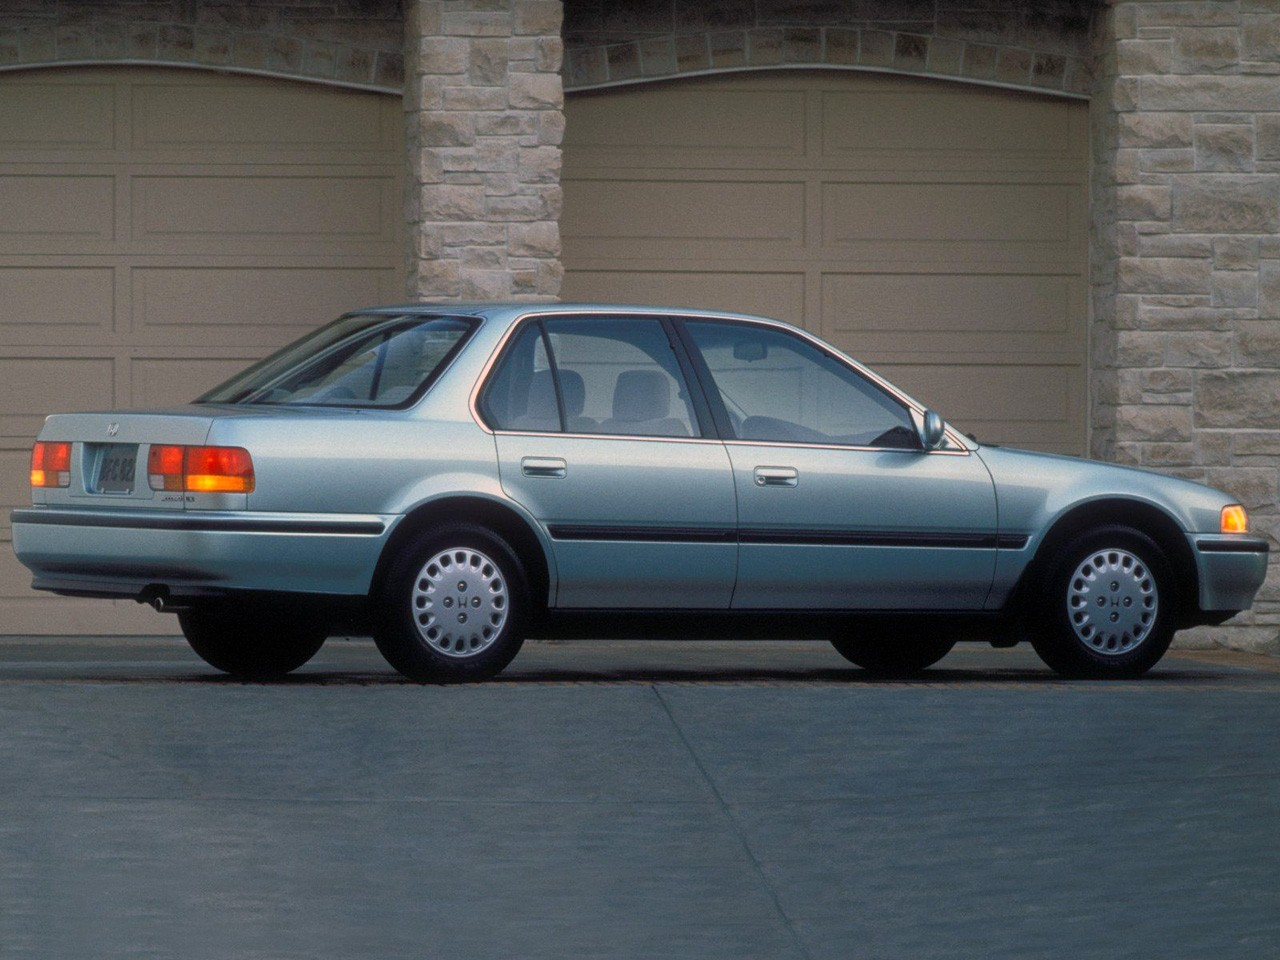 D H Harness H A Motor P as well D Torque Spec Main Bearing Metal Rod Th Gen Cyl Main Rod Spec likewise D Accord Se Check Engine Light Obd as well Hondacrxdelsol furthermore . on 1993 honda civic engine